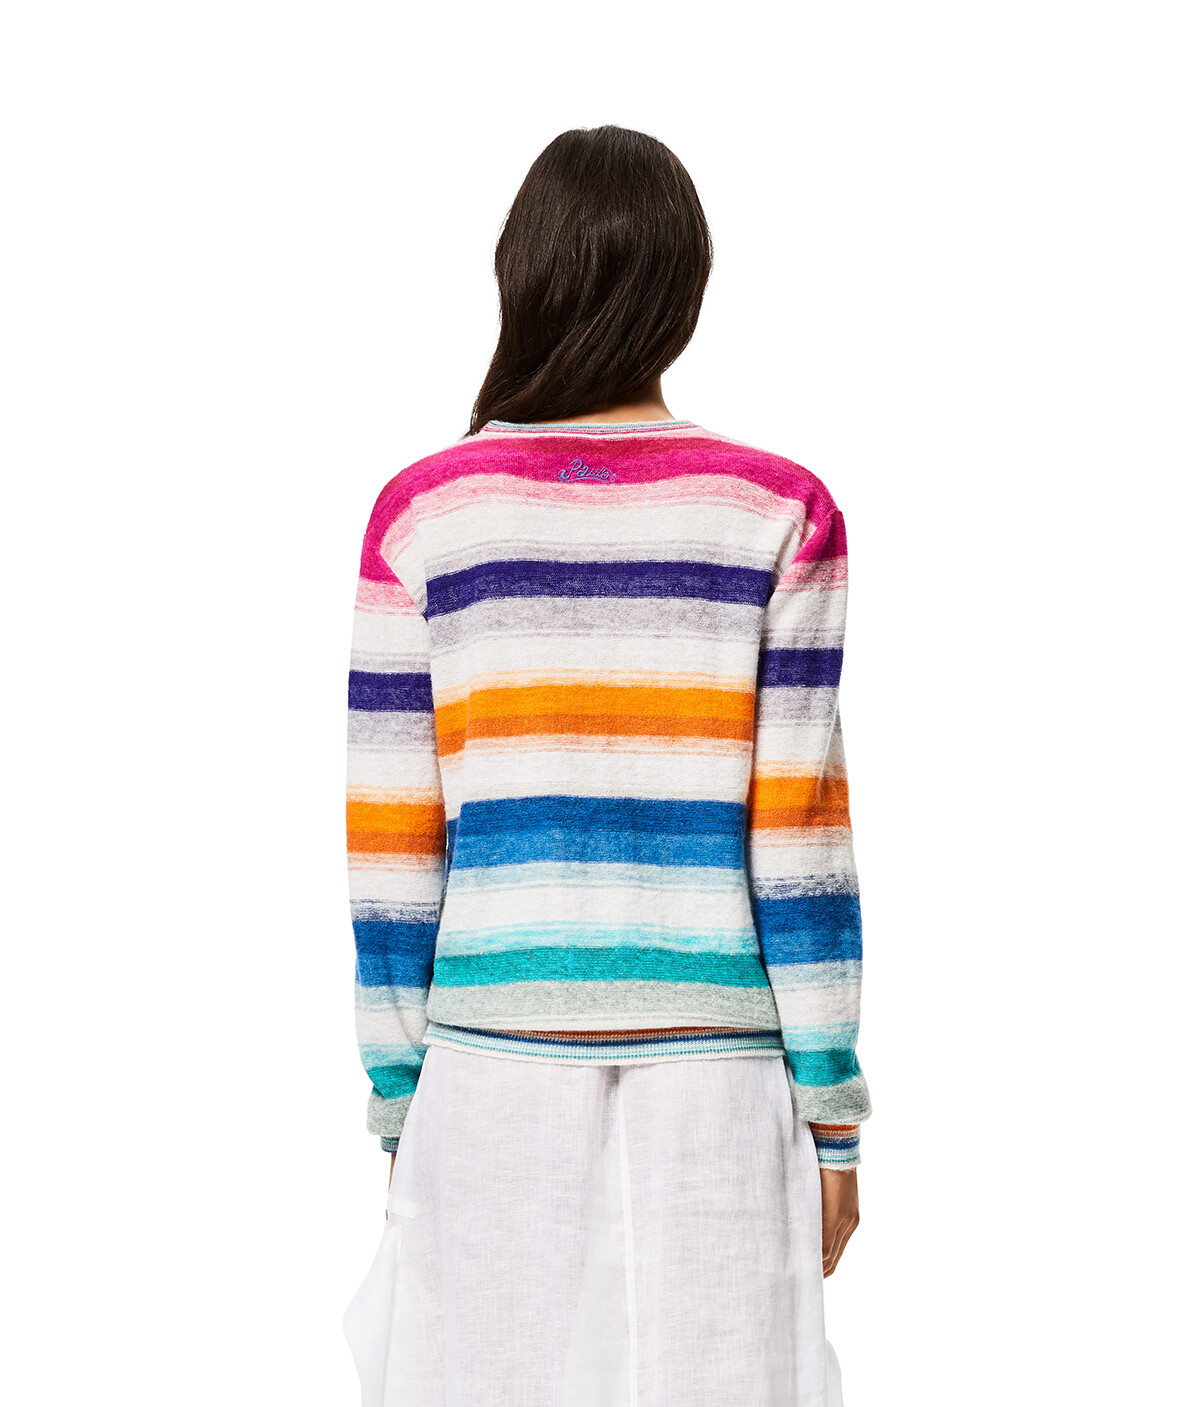 LOEWE Sweater In Striped Cotton Multicolor/White front